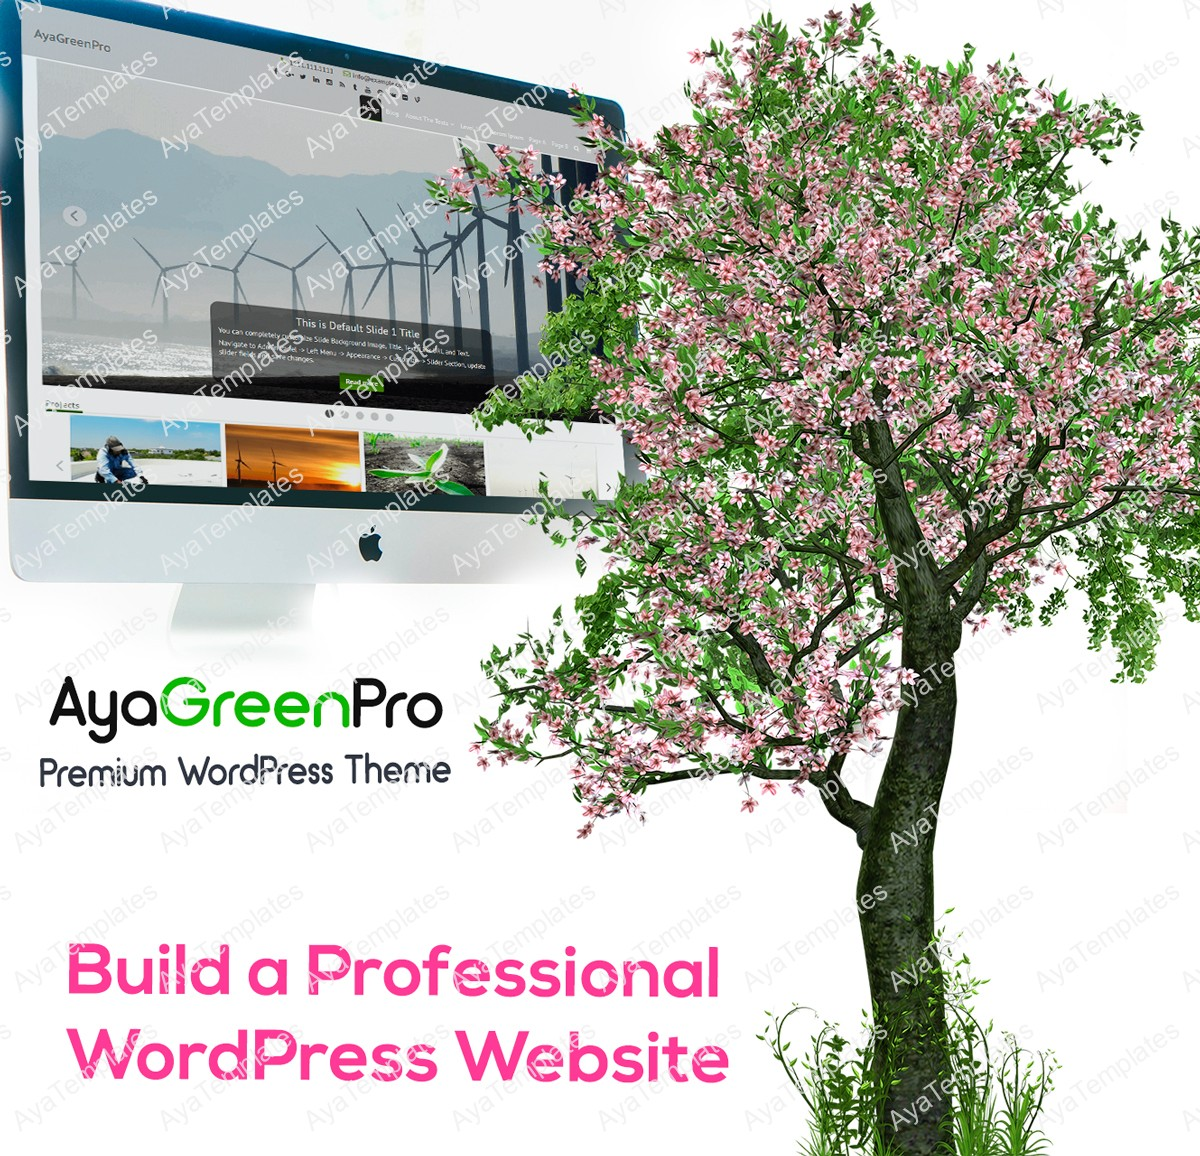 AyaGreenPro-premium-wordpress-theme-mockup